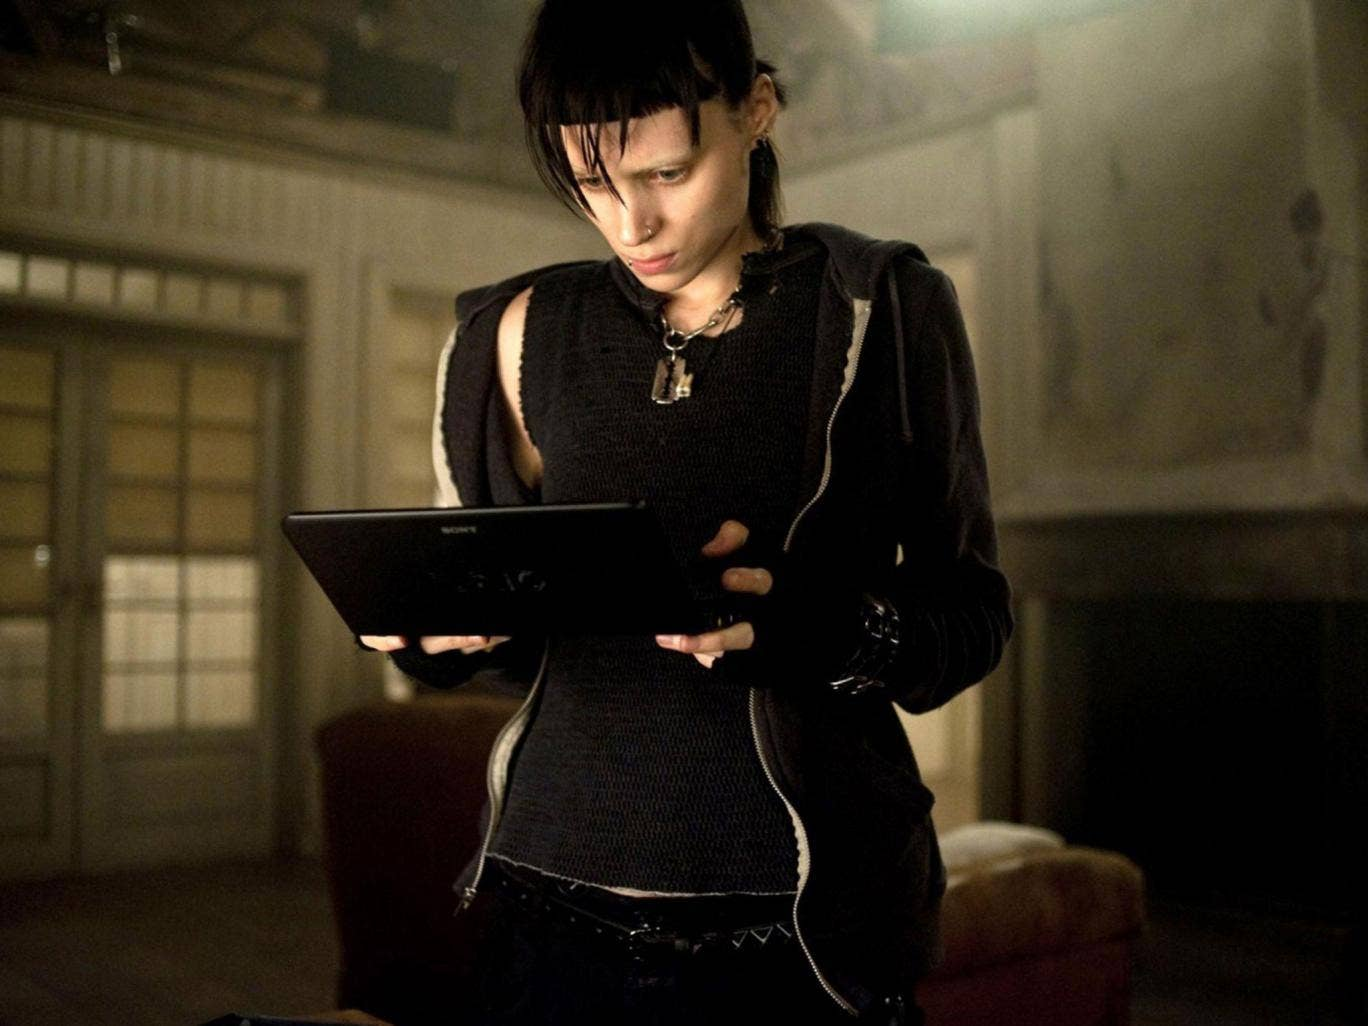 Rooney Mara as Lisbeth Salander in the film version of Girl with a Dragon Tattoo